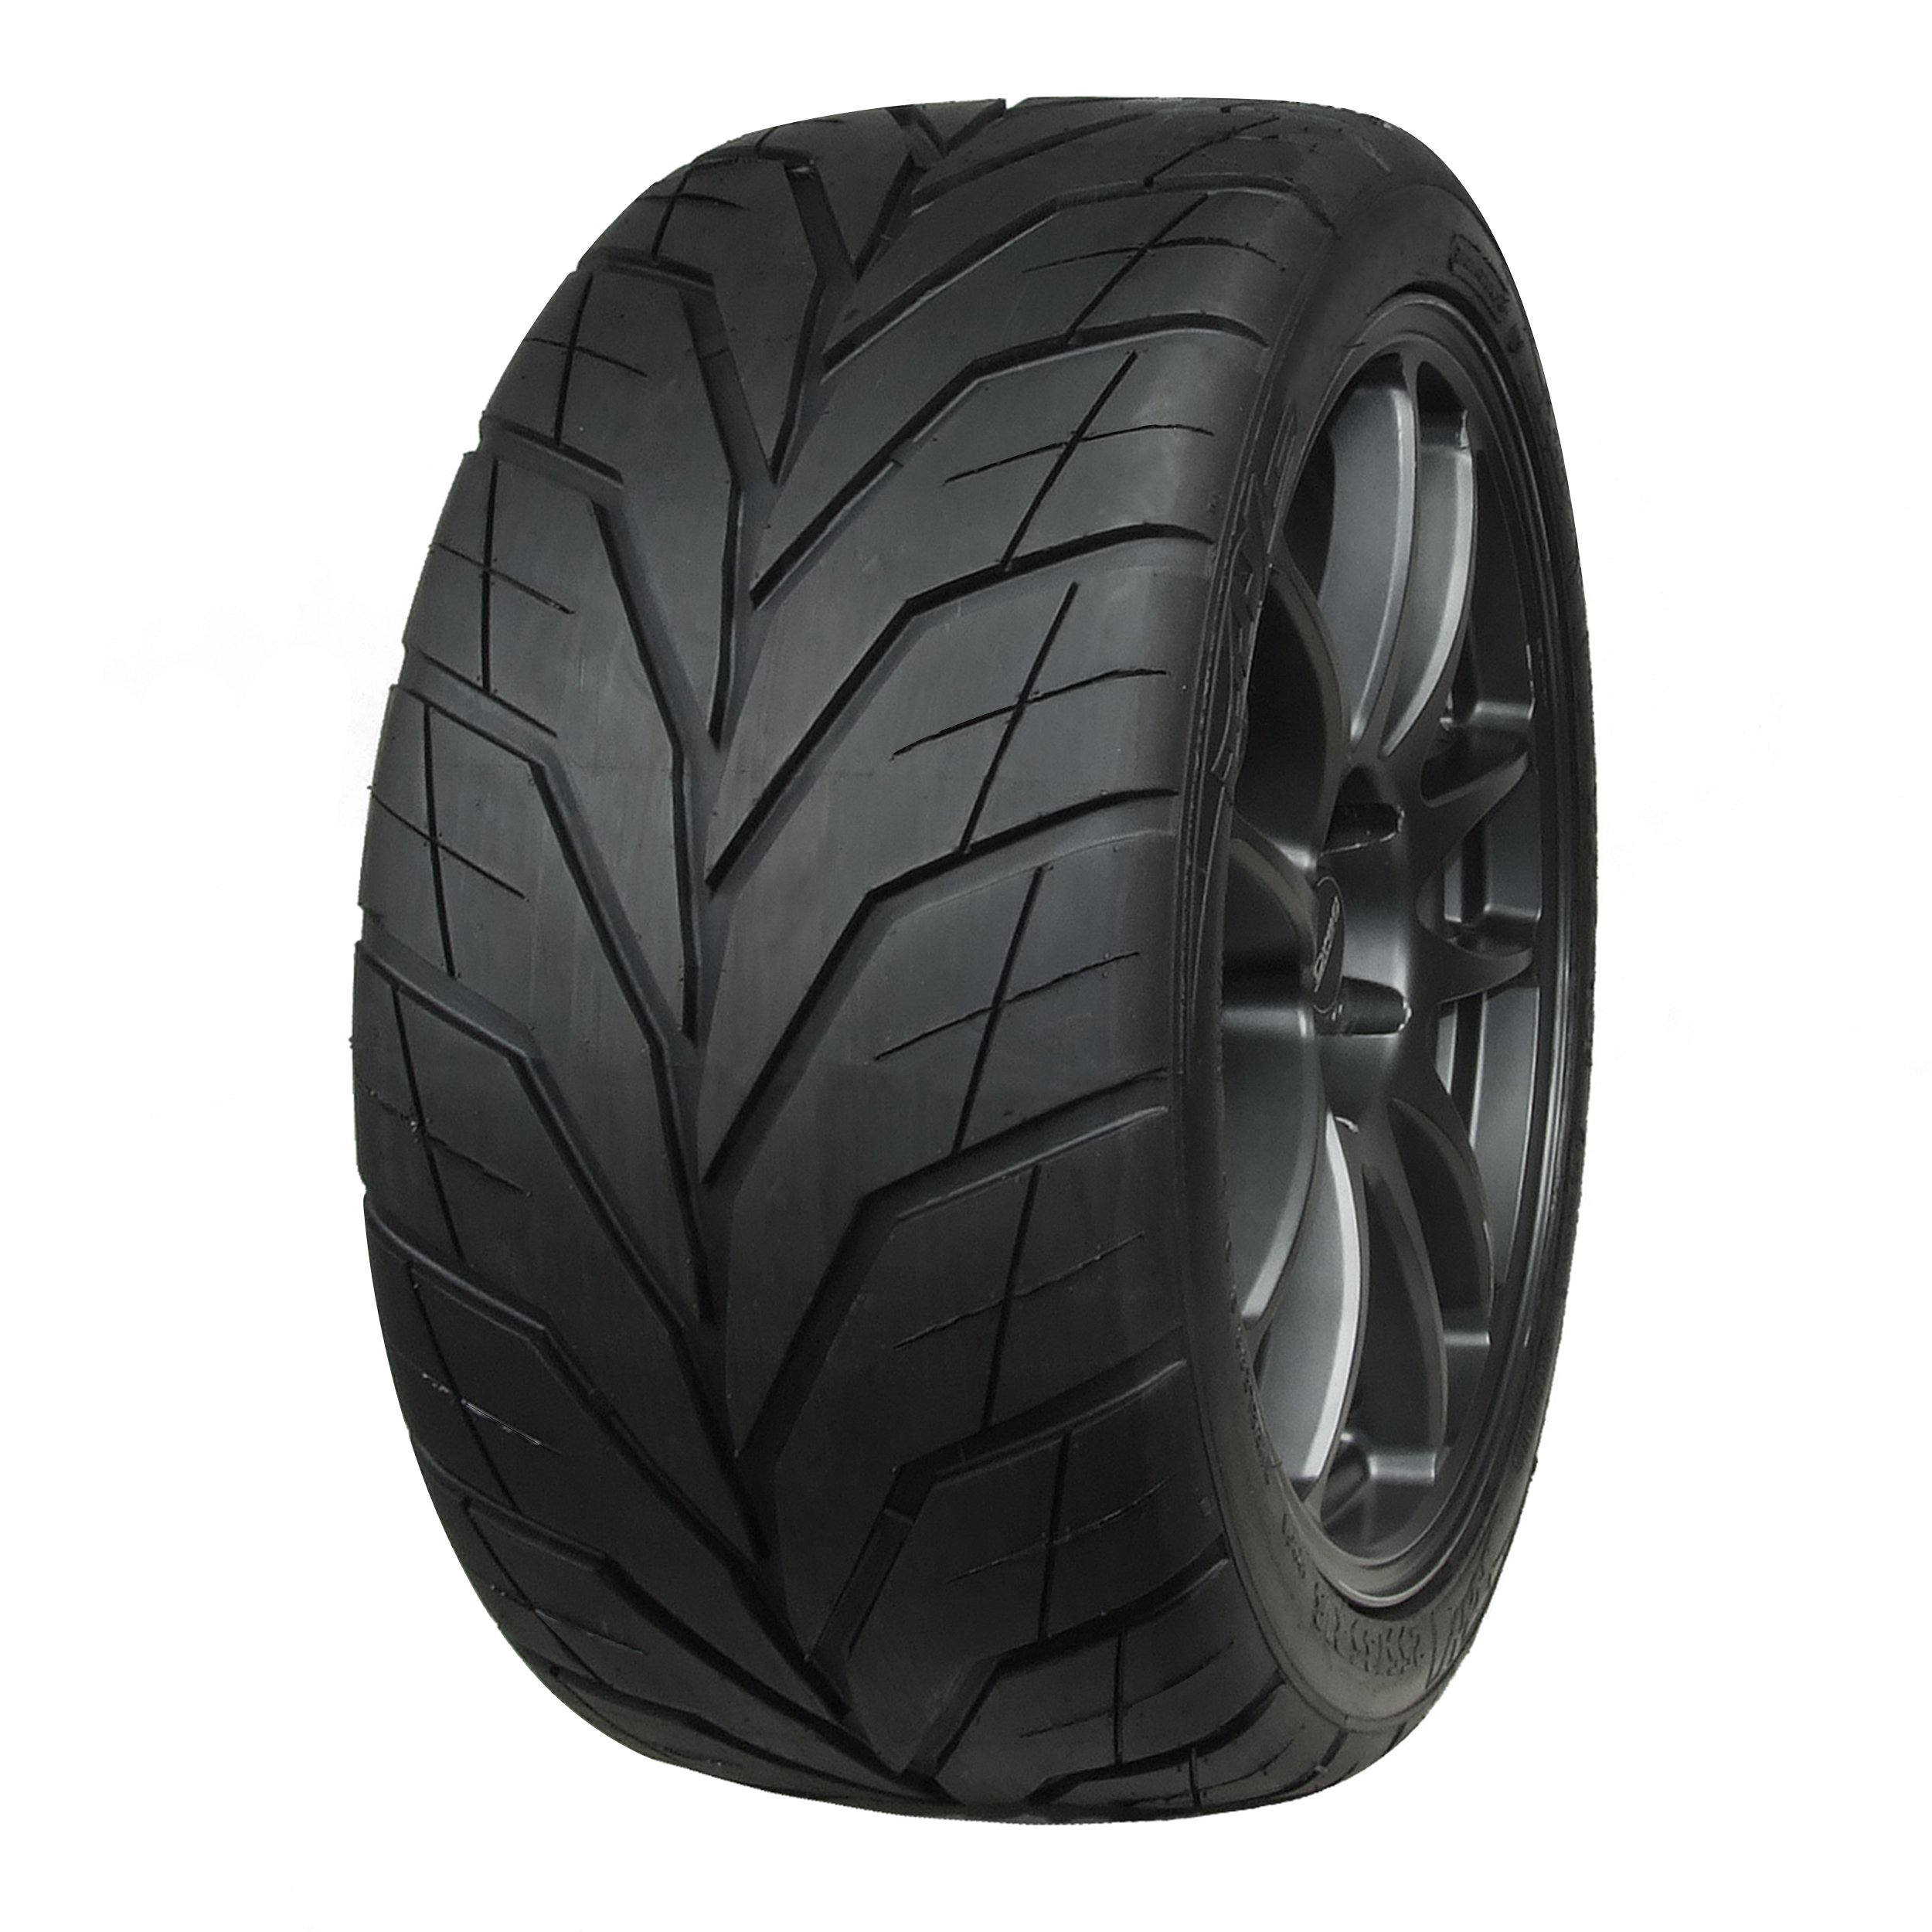 EXTREME VR1 TYPE-W4 Racing Tire for Wet Conditions 255/35-18